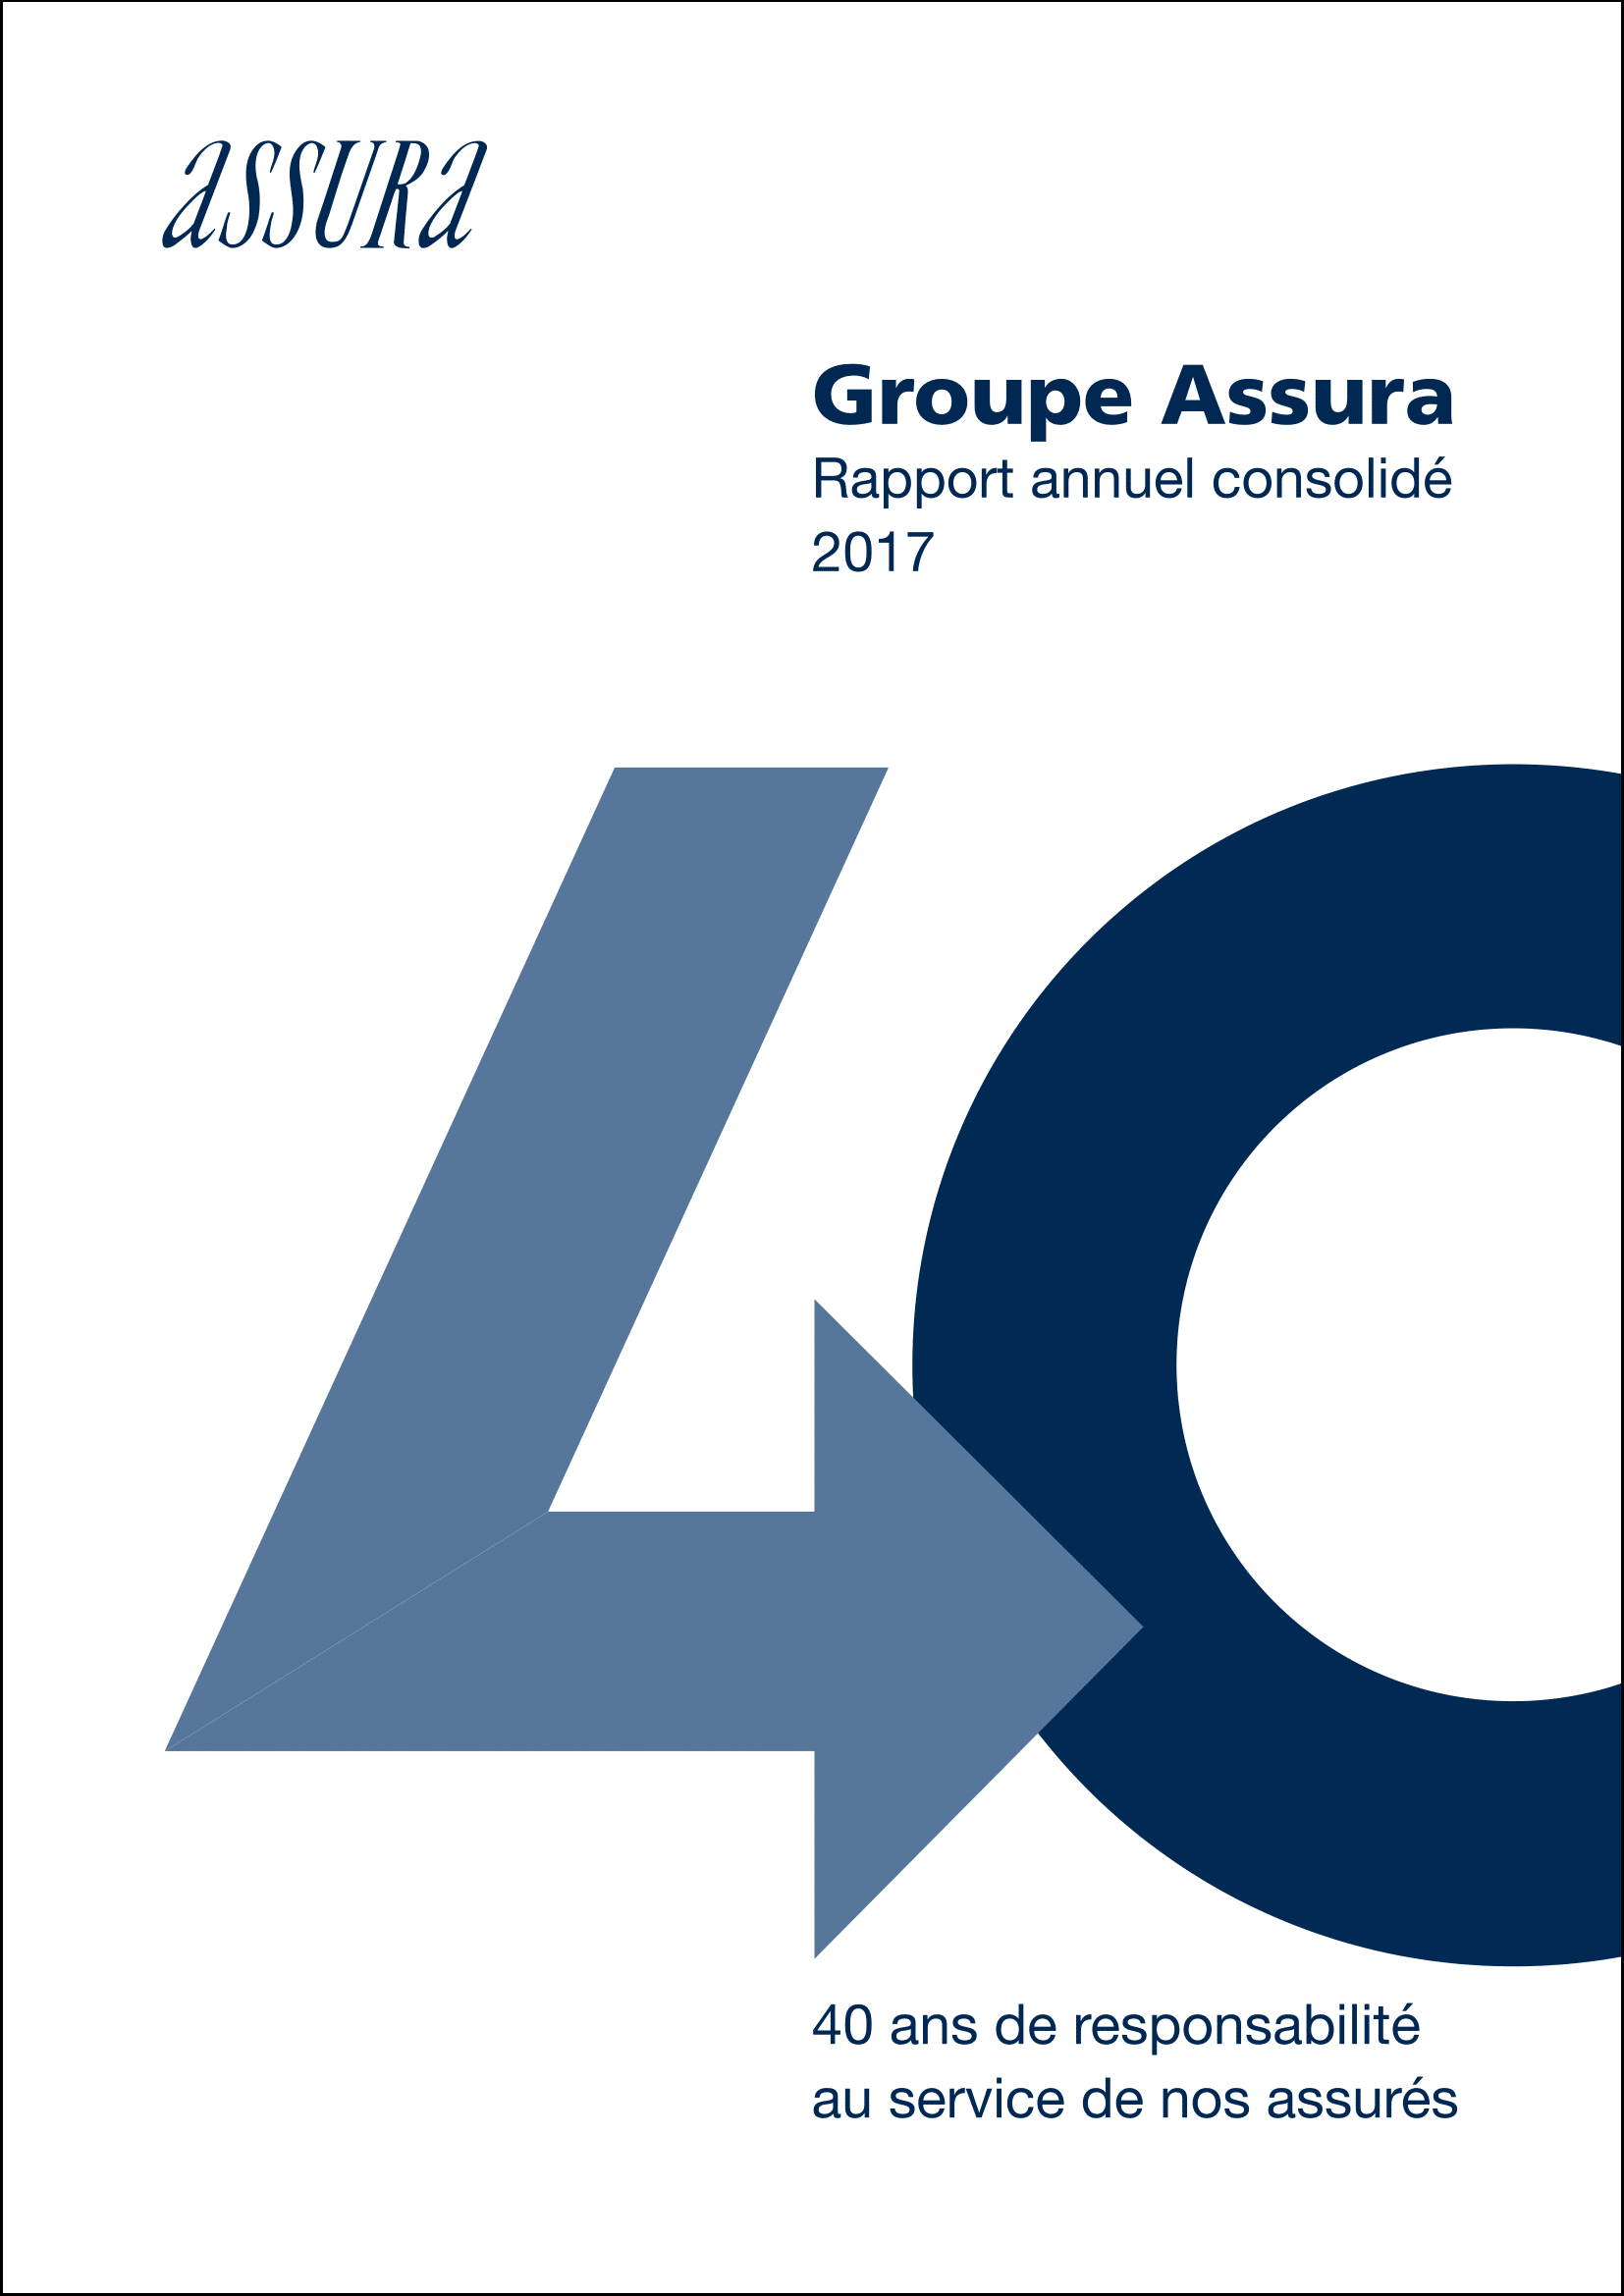 Relazione annuale consolidata 2017 (in francese) thumbnail